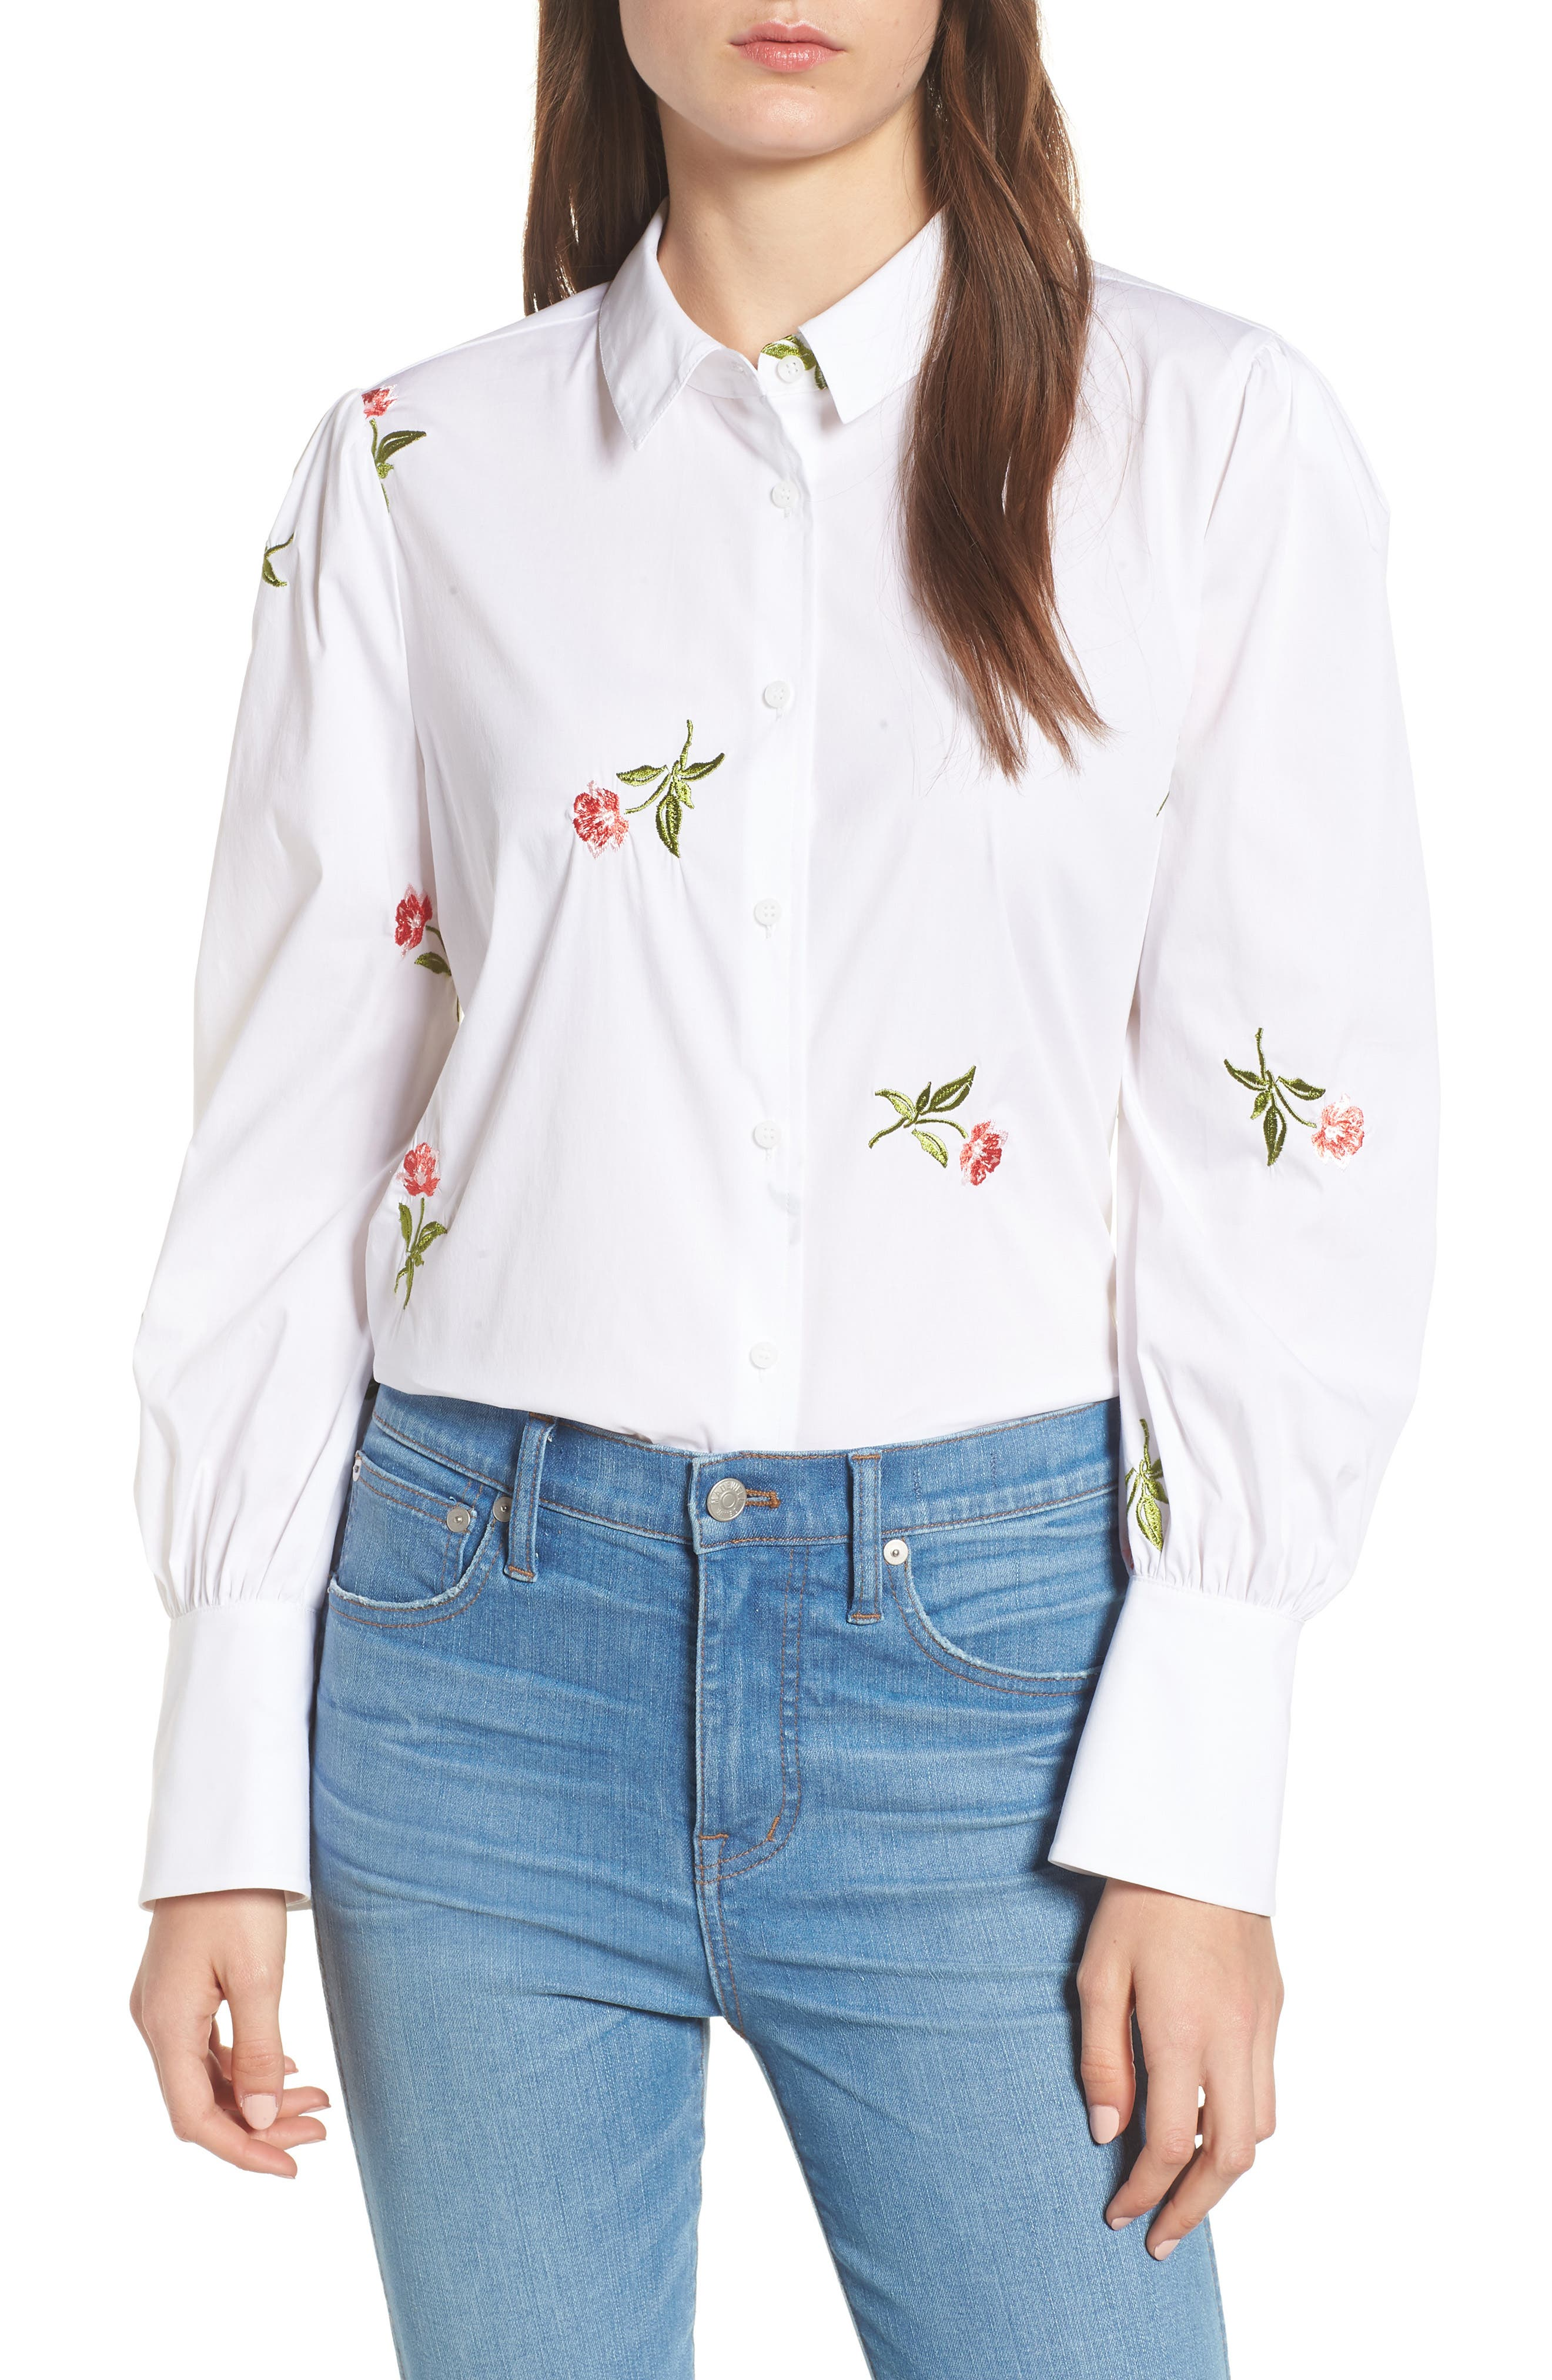 CHELSEA28,                             Embroidered Woven Shirt,                             Main thumbnail 1, color,                             WHITE- CORAL BUD EMBROIDERY